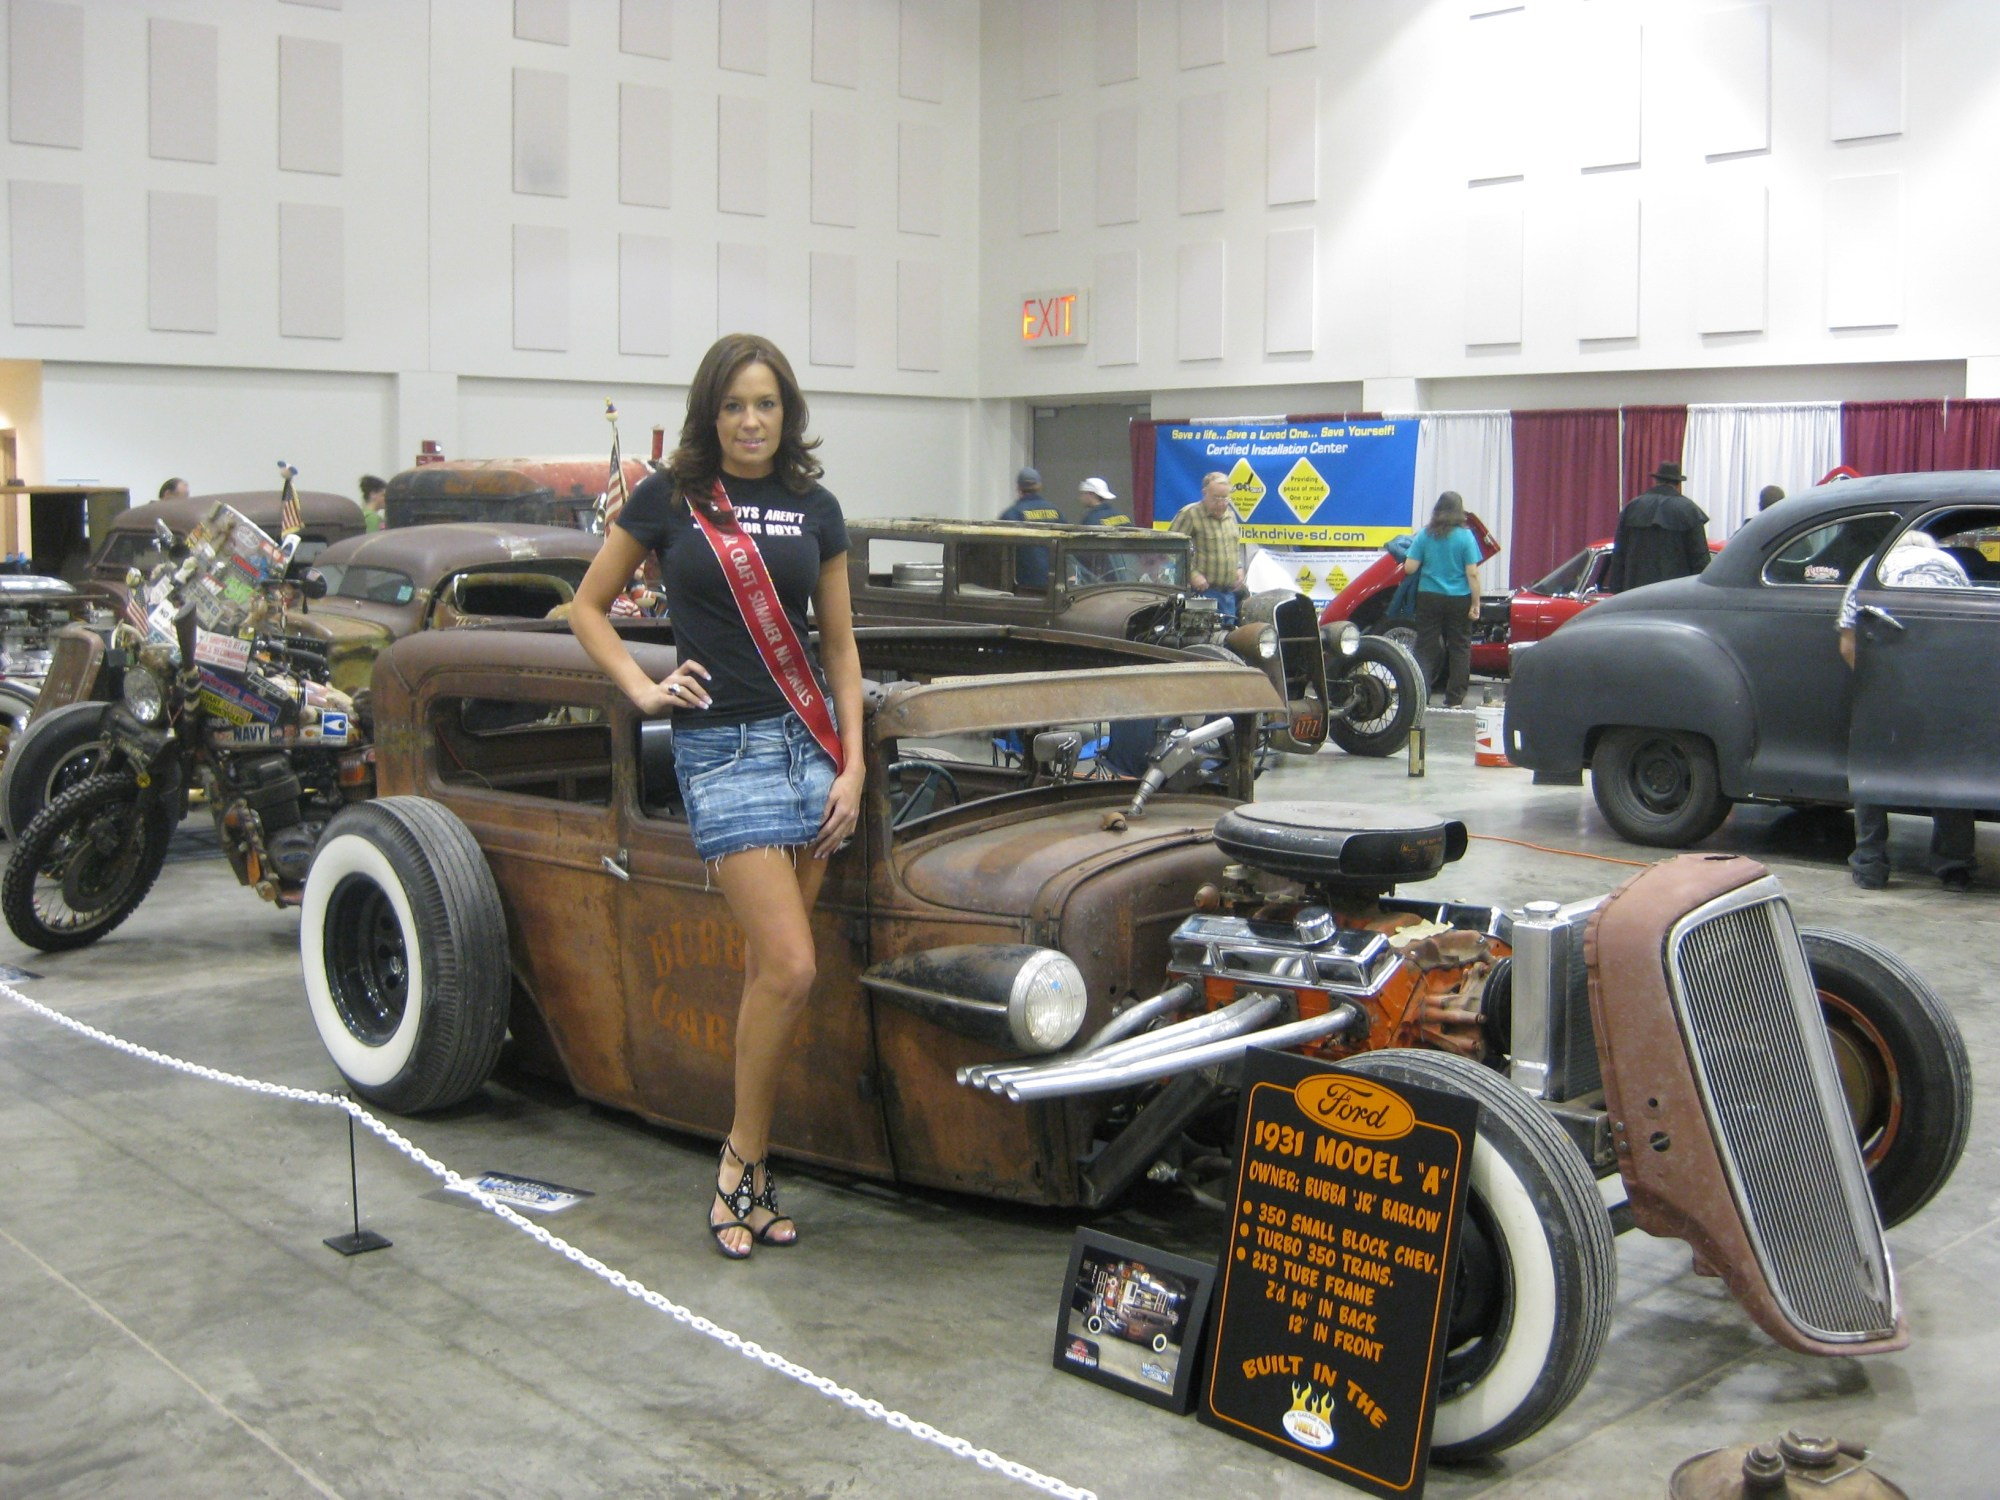 hight resolution of bubbasgarage s 1931 ford model athis is my 1931 ford model a sedan rat rod chopped